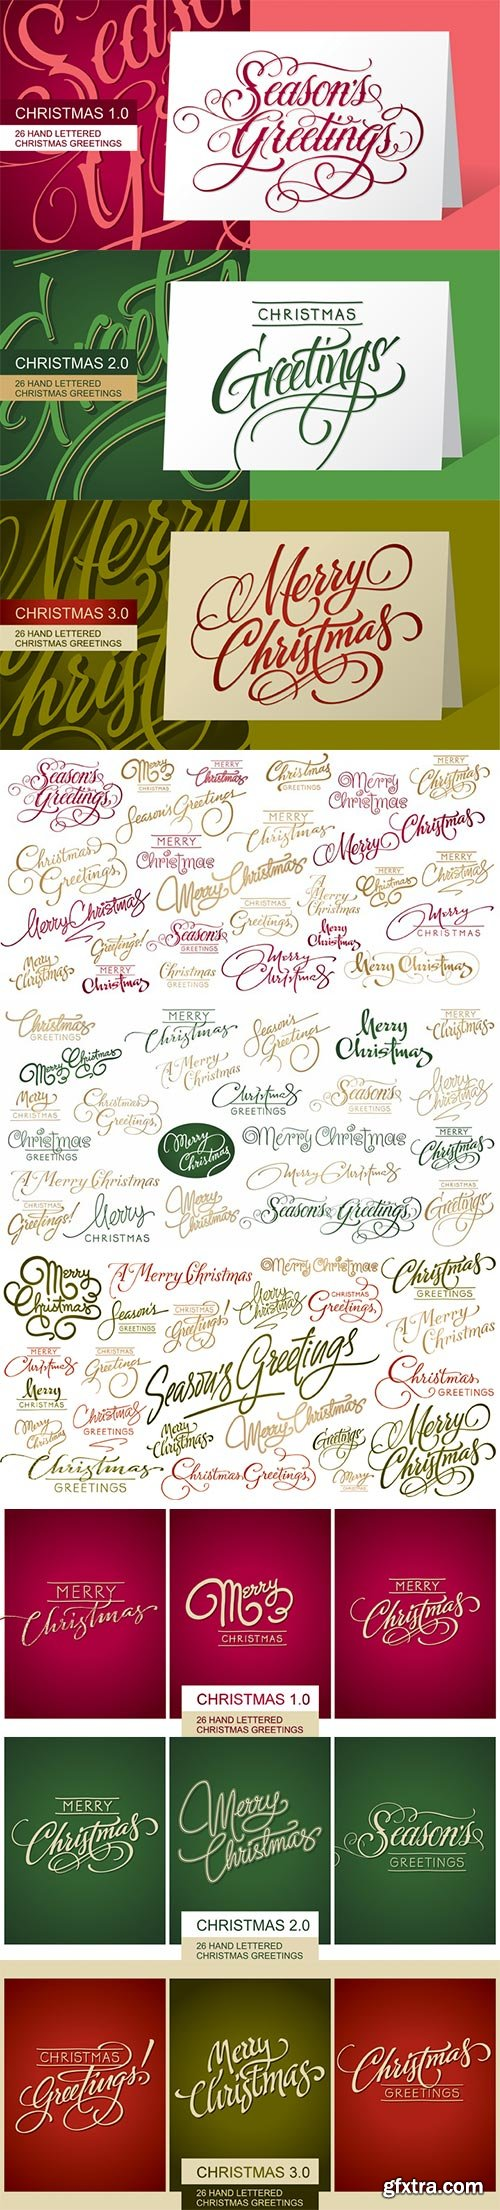 FM Christmas 1.0, 2.0 & 3.0 Hand Lettered Greetings 3xOTF $60